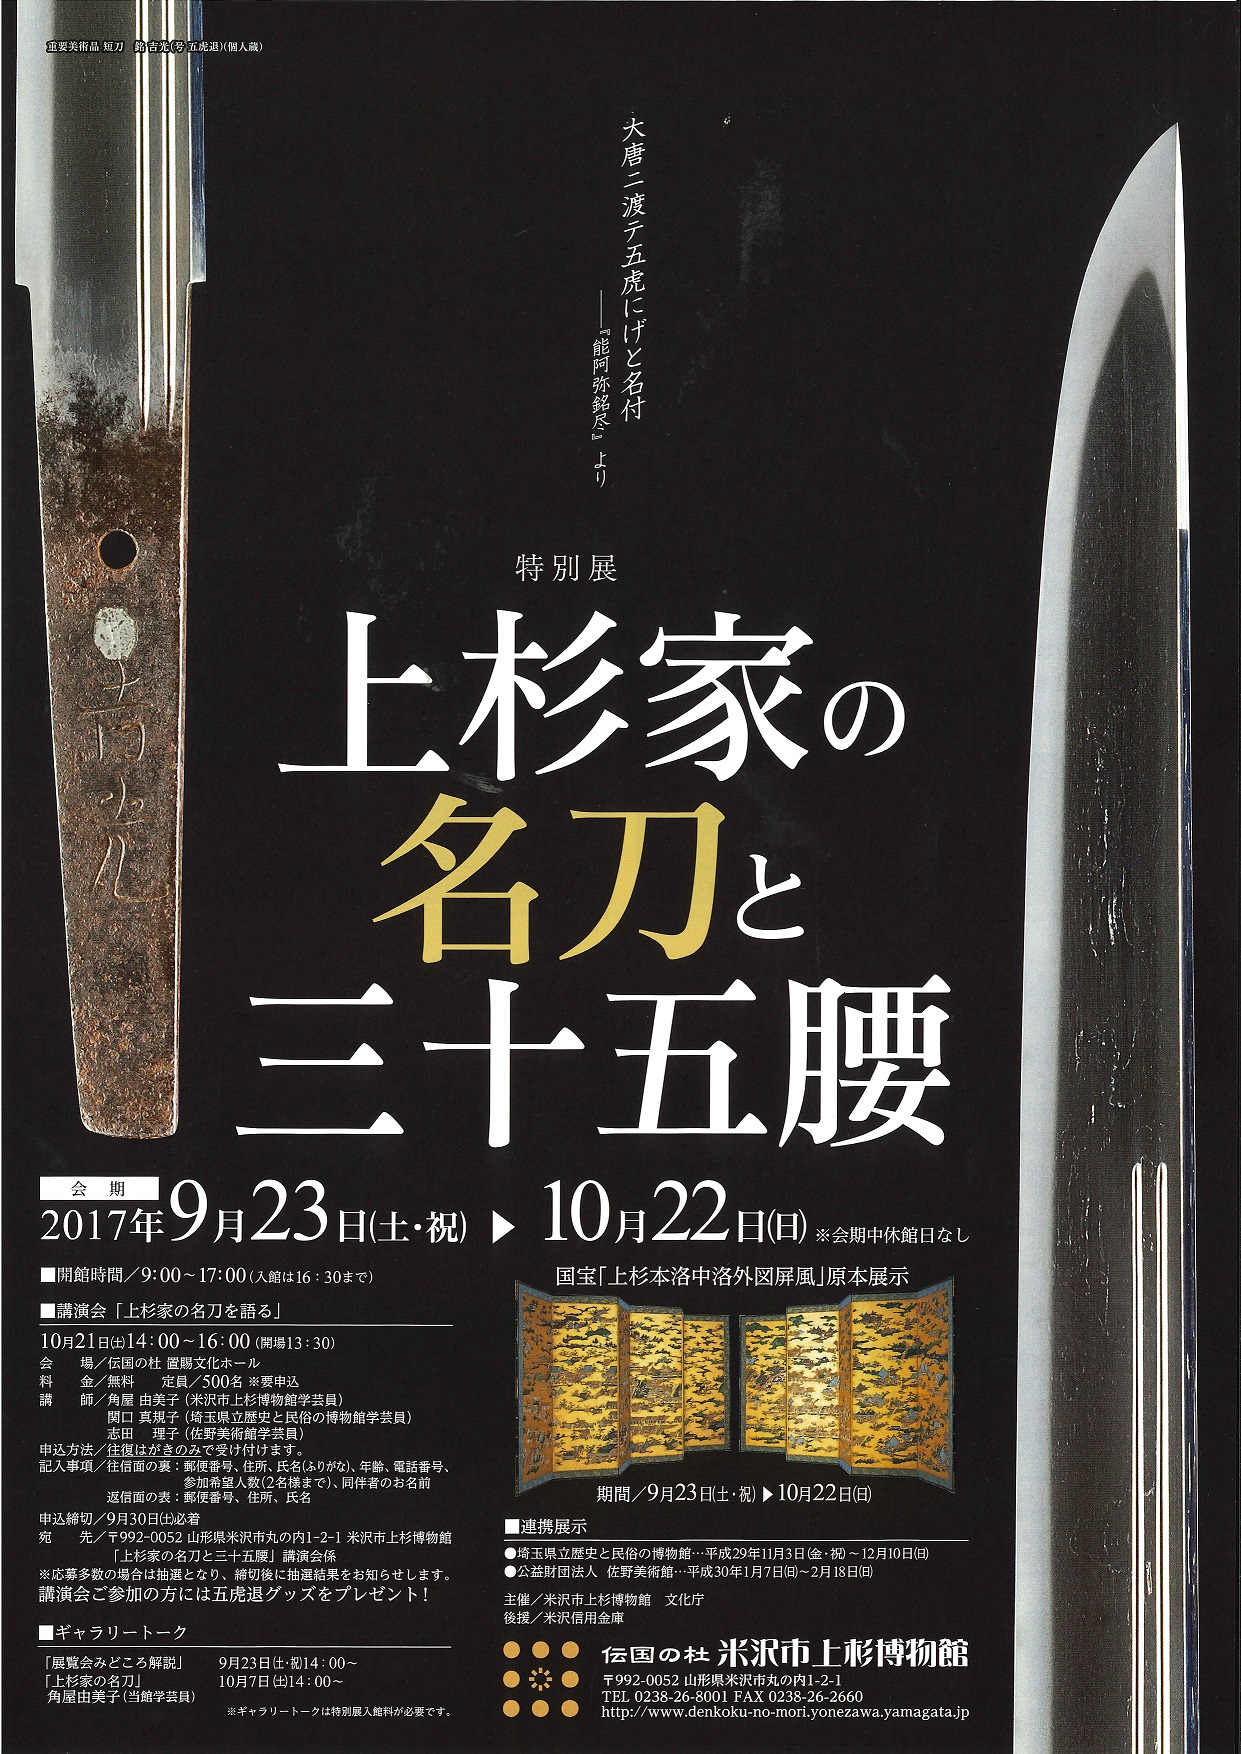 """Uesugi Museum temporary exhibition """"fine sword and 35 waist of person of Uesugi:"""" Image"""